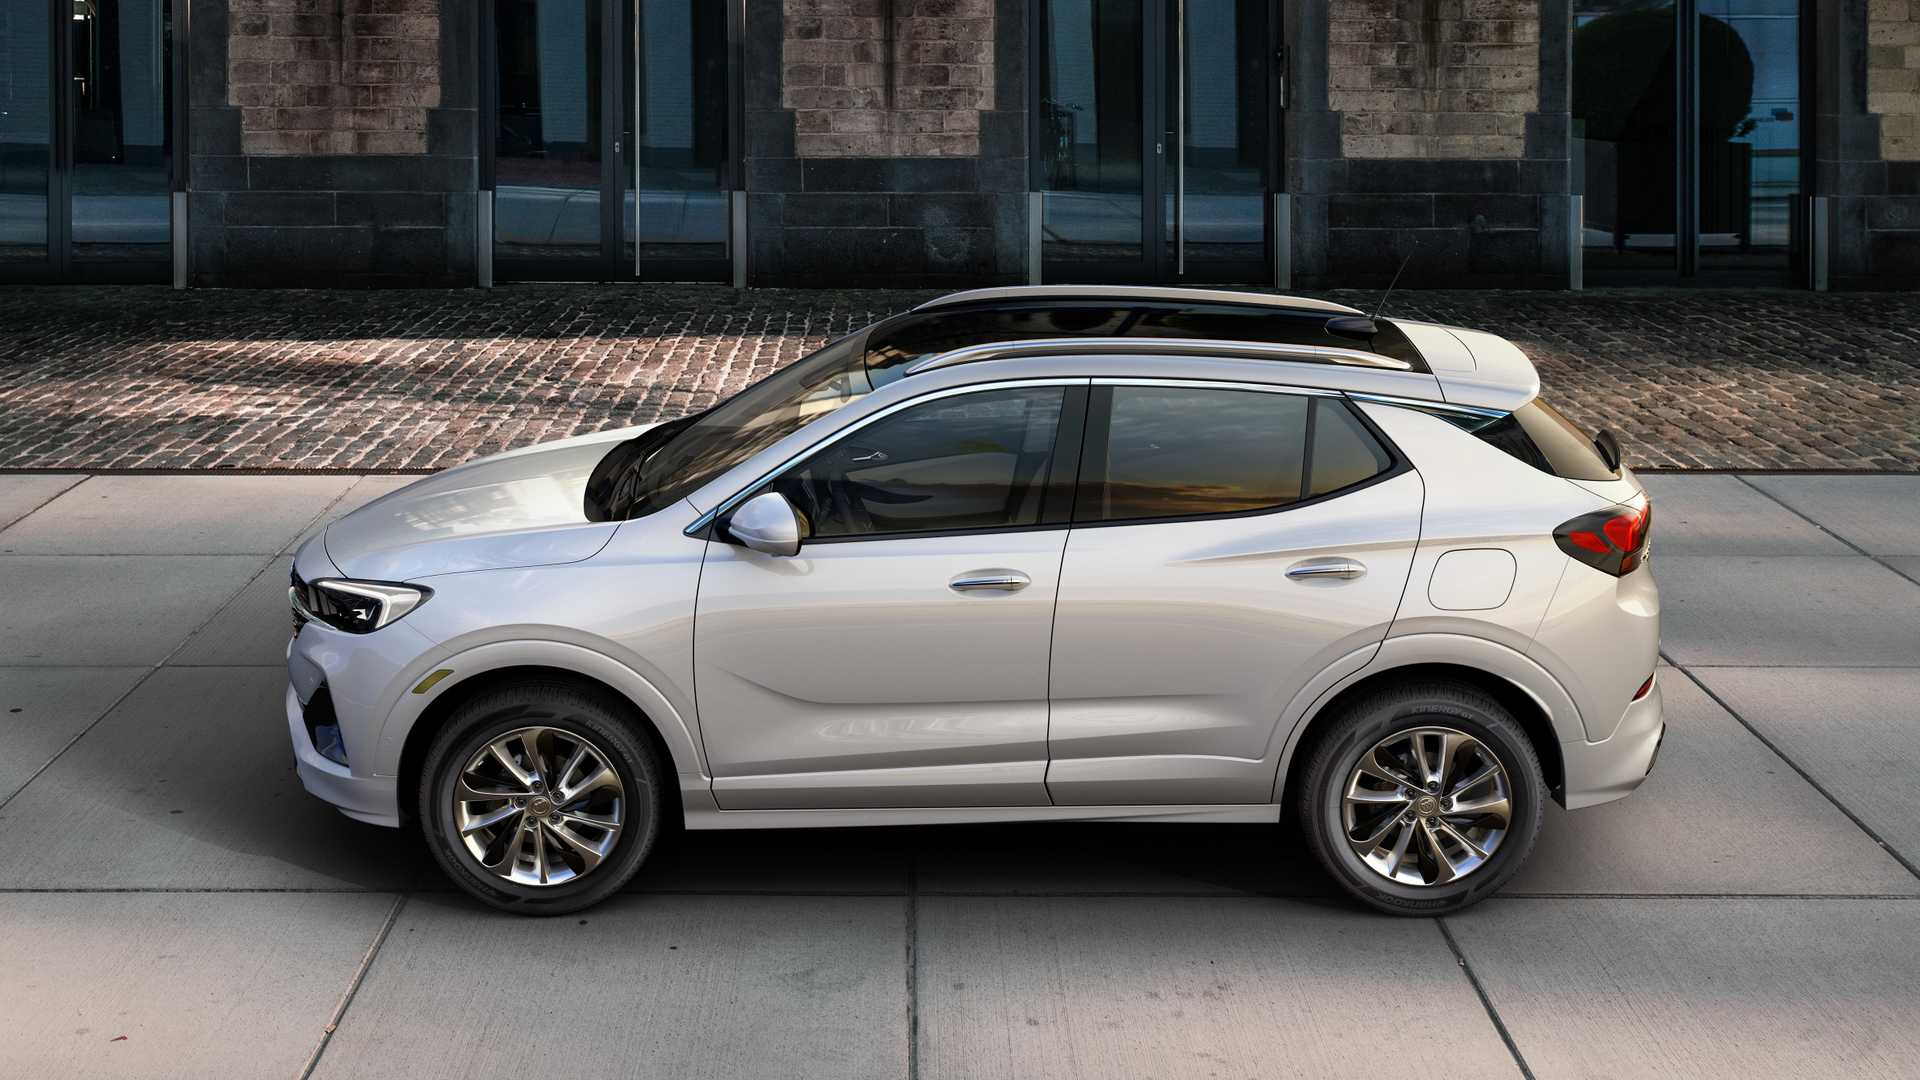 2021 Buick Encore Gx Details Emerge: Styling Tweaks, More Tech How Long Is The New 2021 Buick Encore Gx